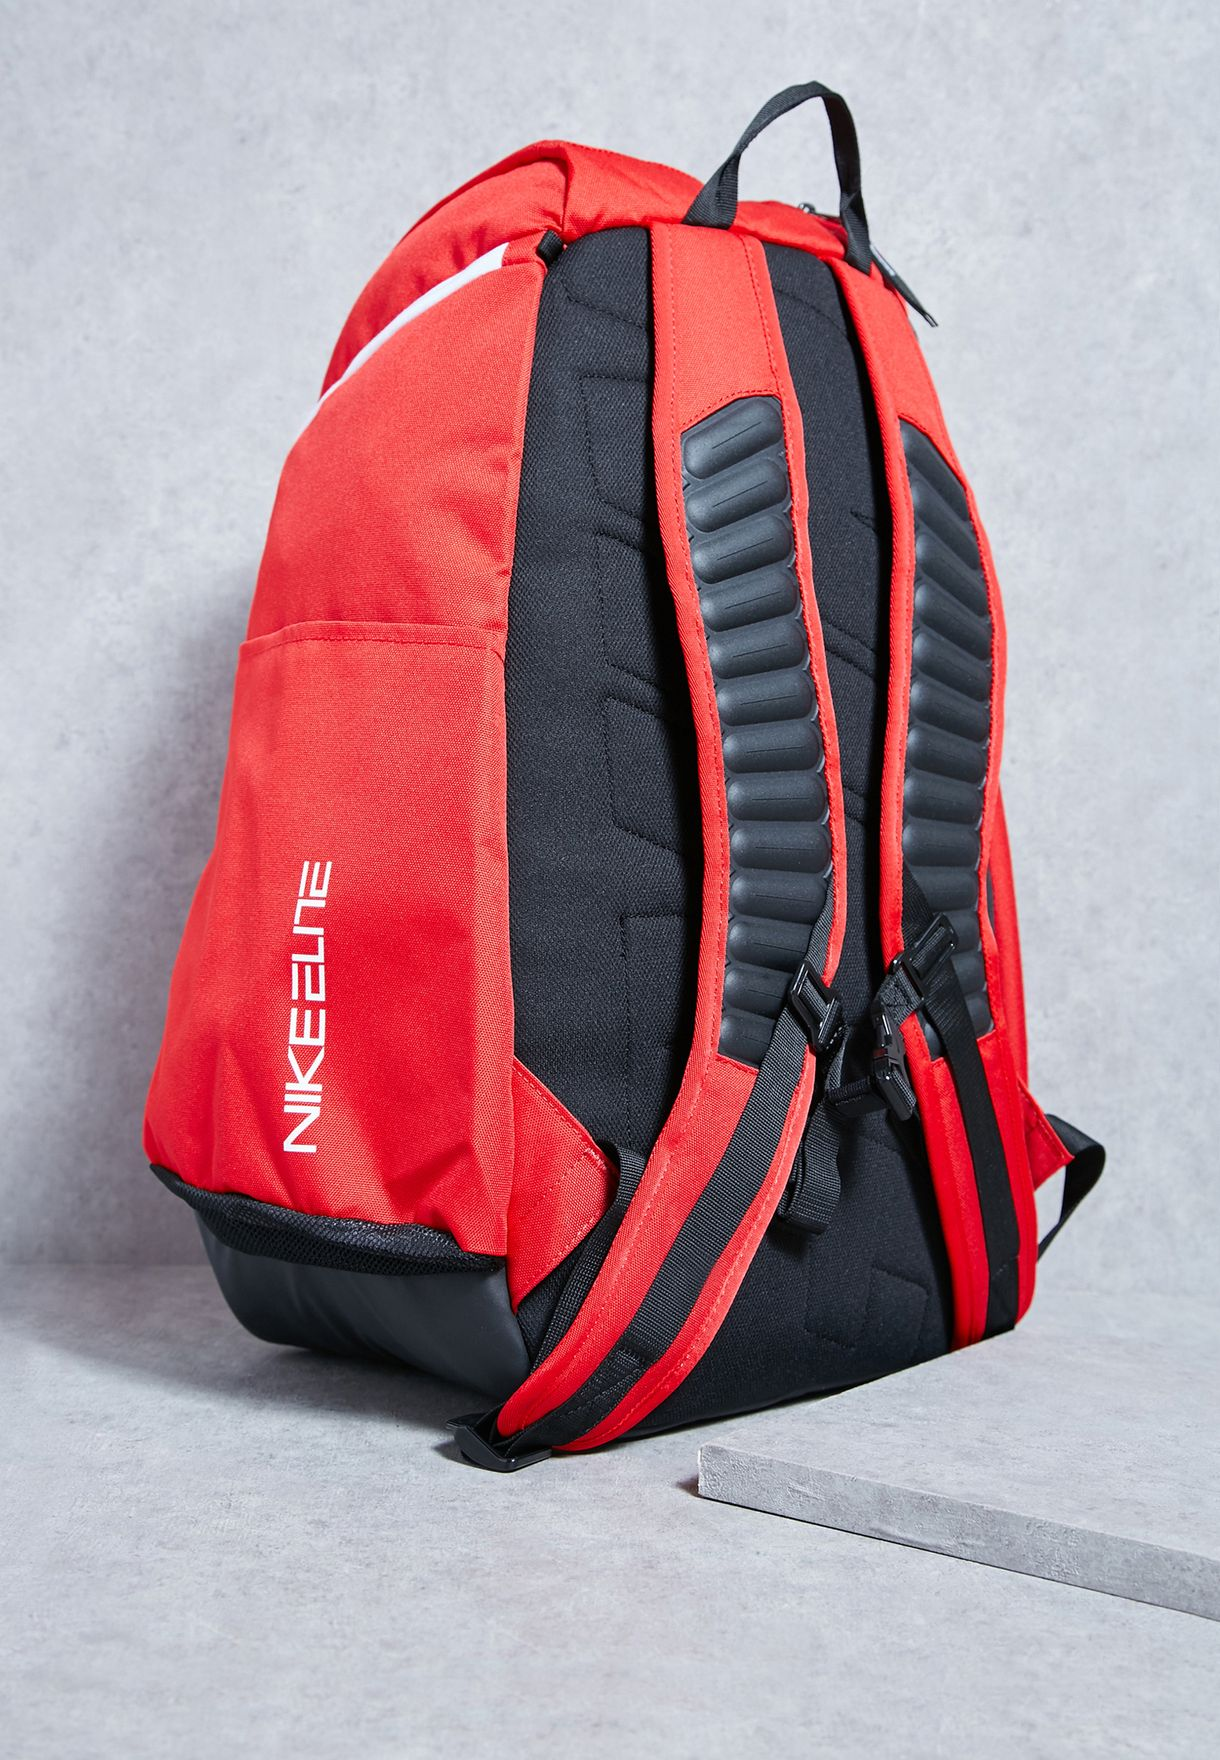 e3229aa2f781 Shop Nike red Elite Max Air Team Backpack BA5259-657 for Men in ...